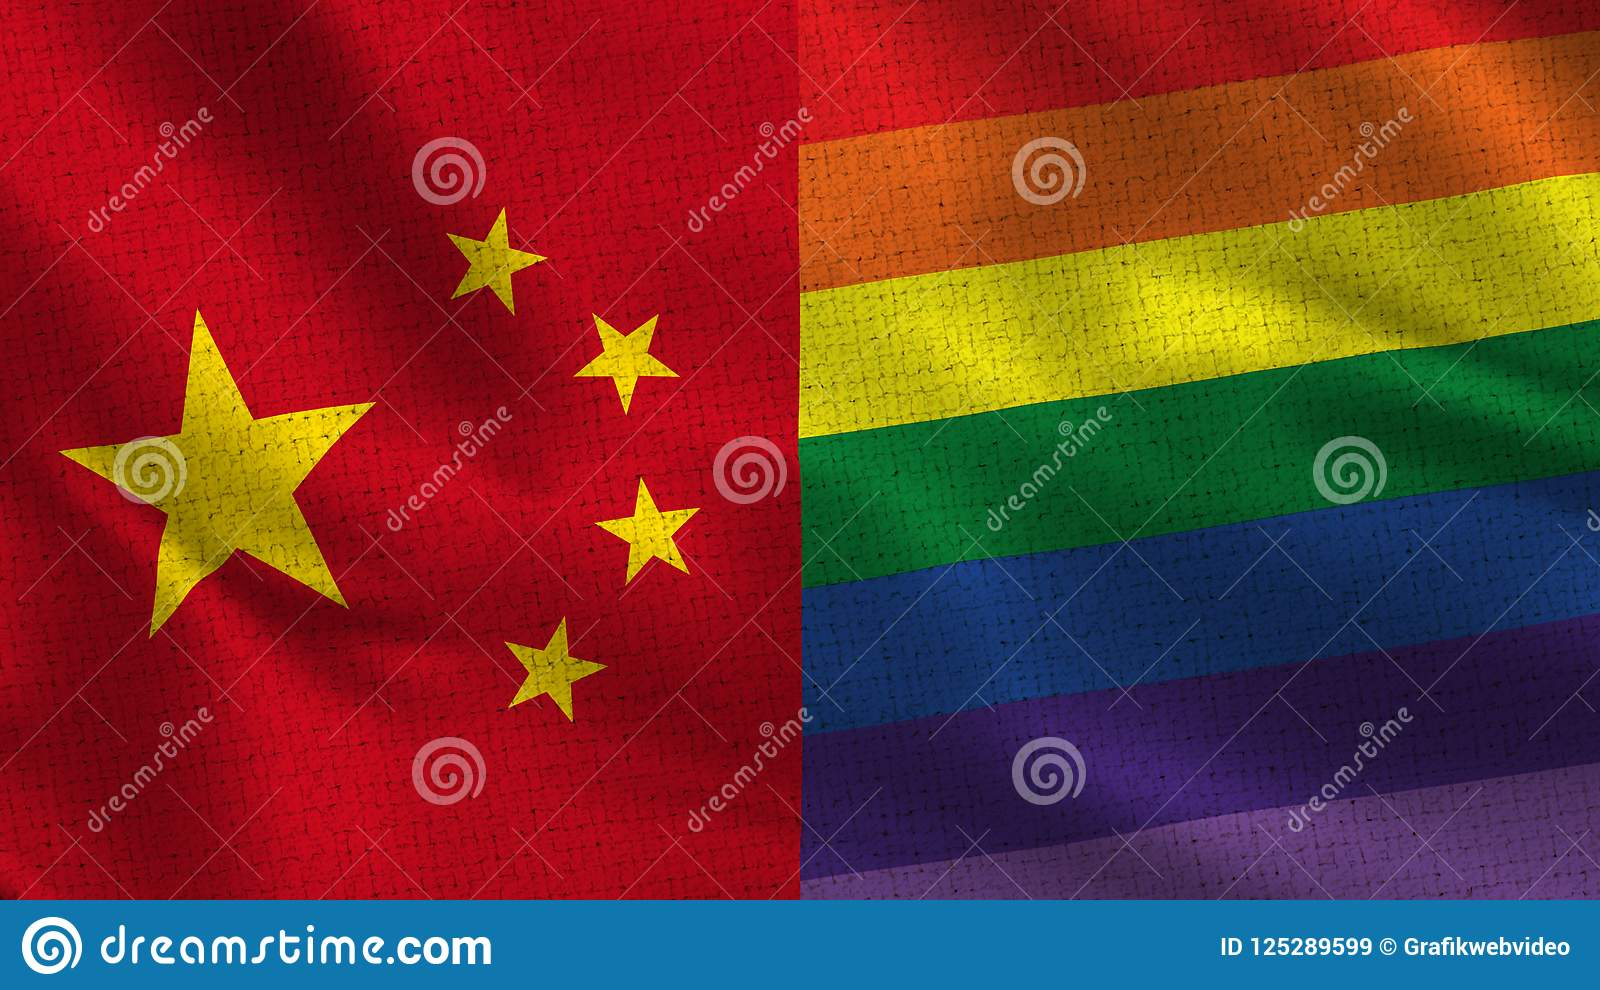 China and Pride Gay - Two Half Flags Together